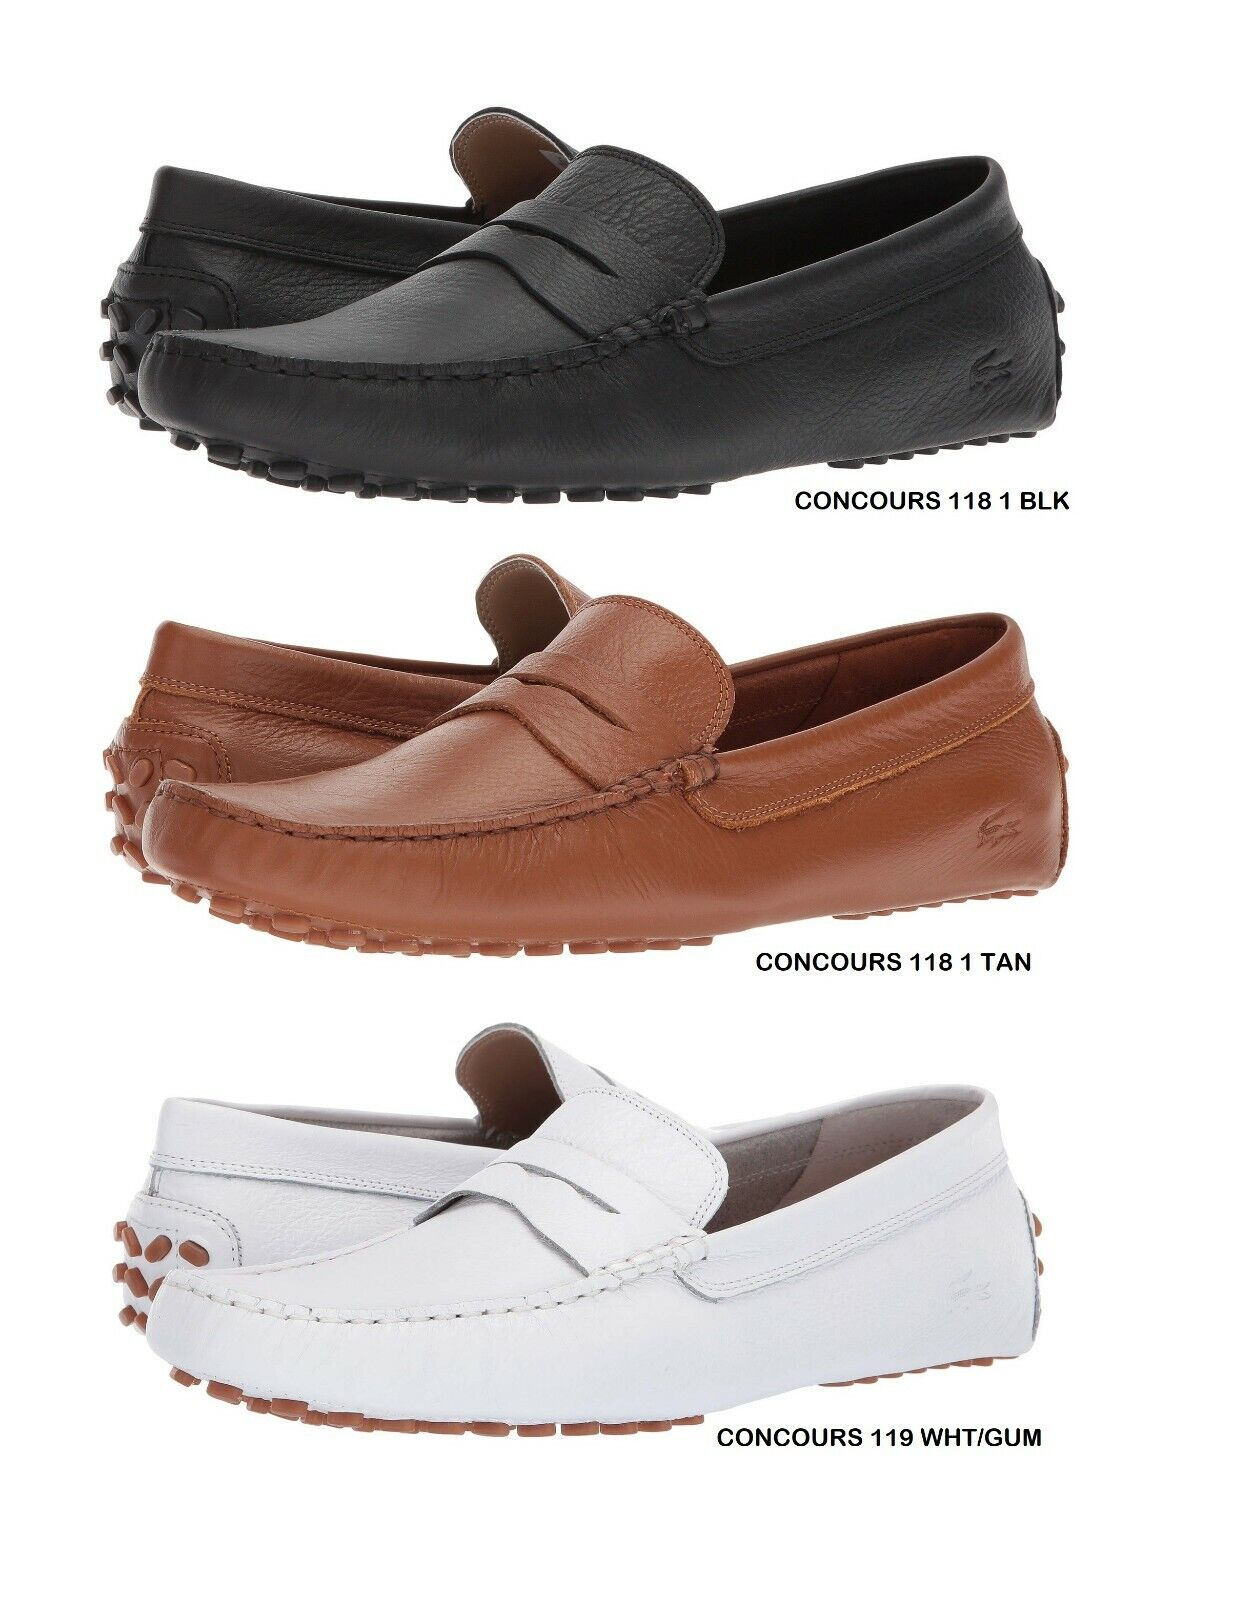 Lacoste Concours Men's Casual Slip on Croc Logo Leather Loafer Shoes Sneakers